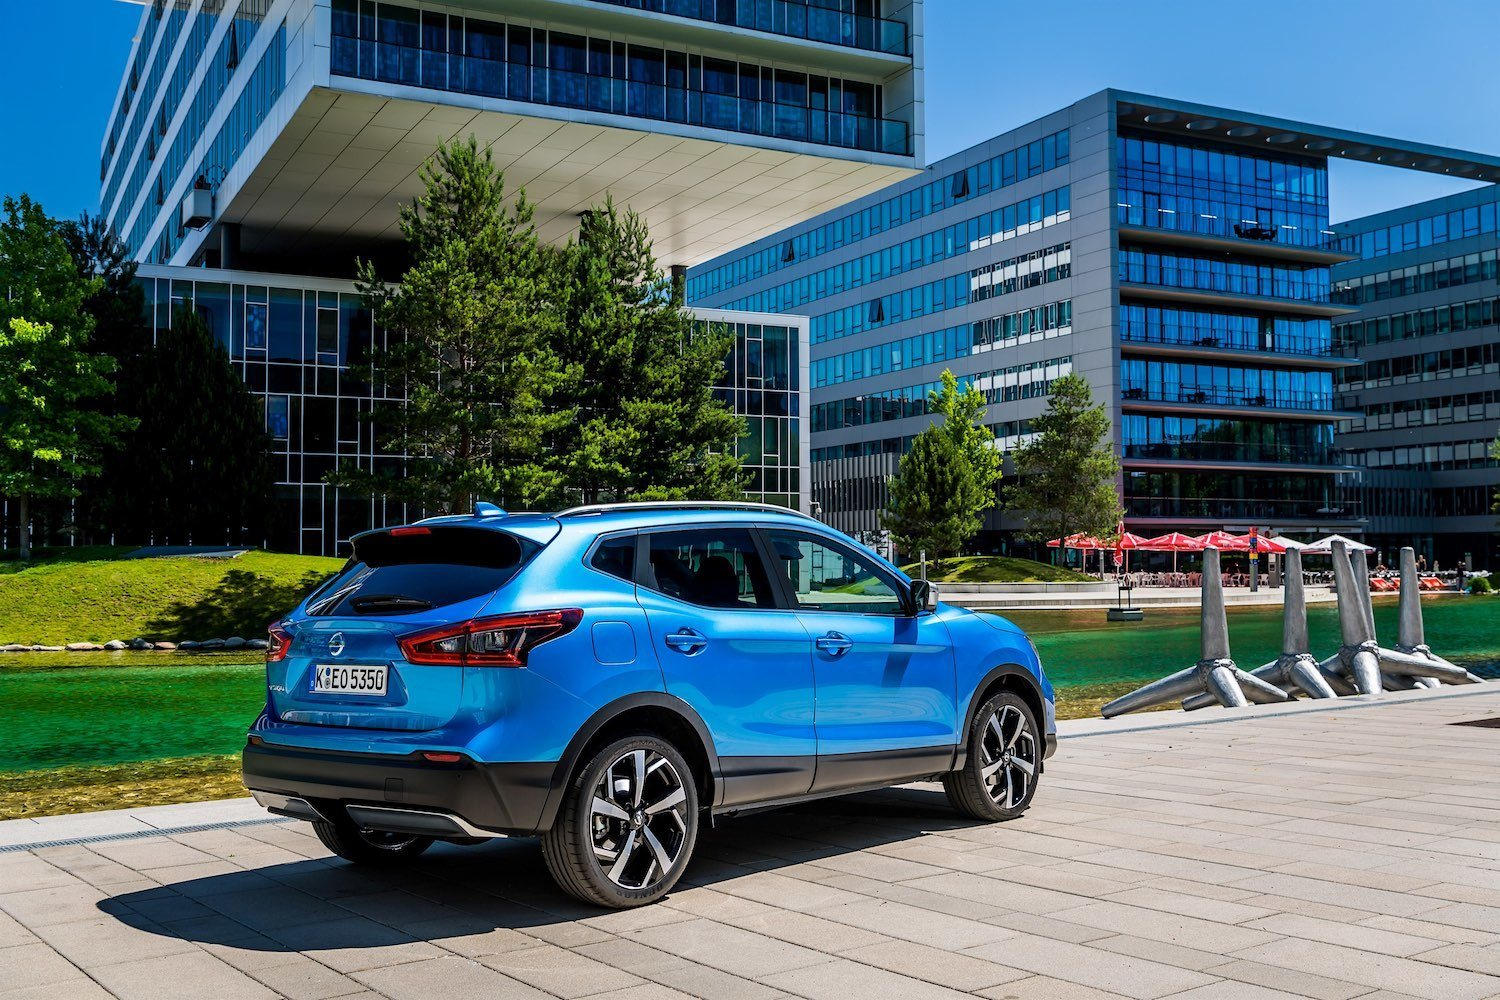 Drive reviews the Nissan Qashqai from the Launch in Vienna 4